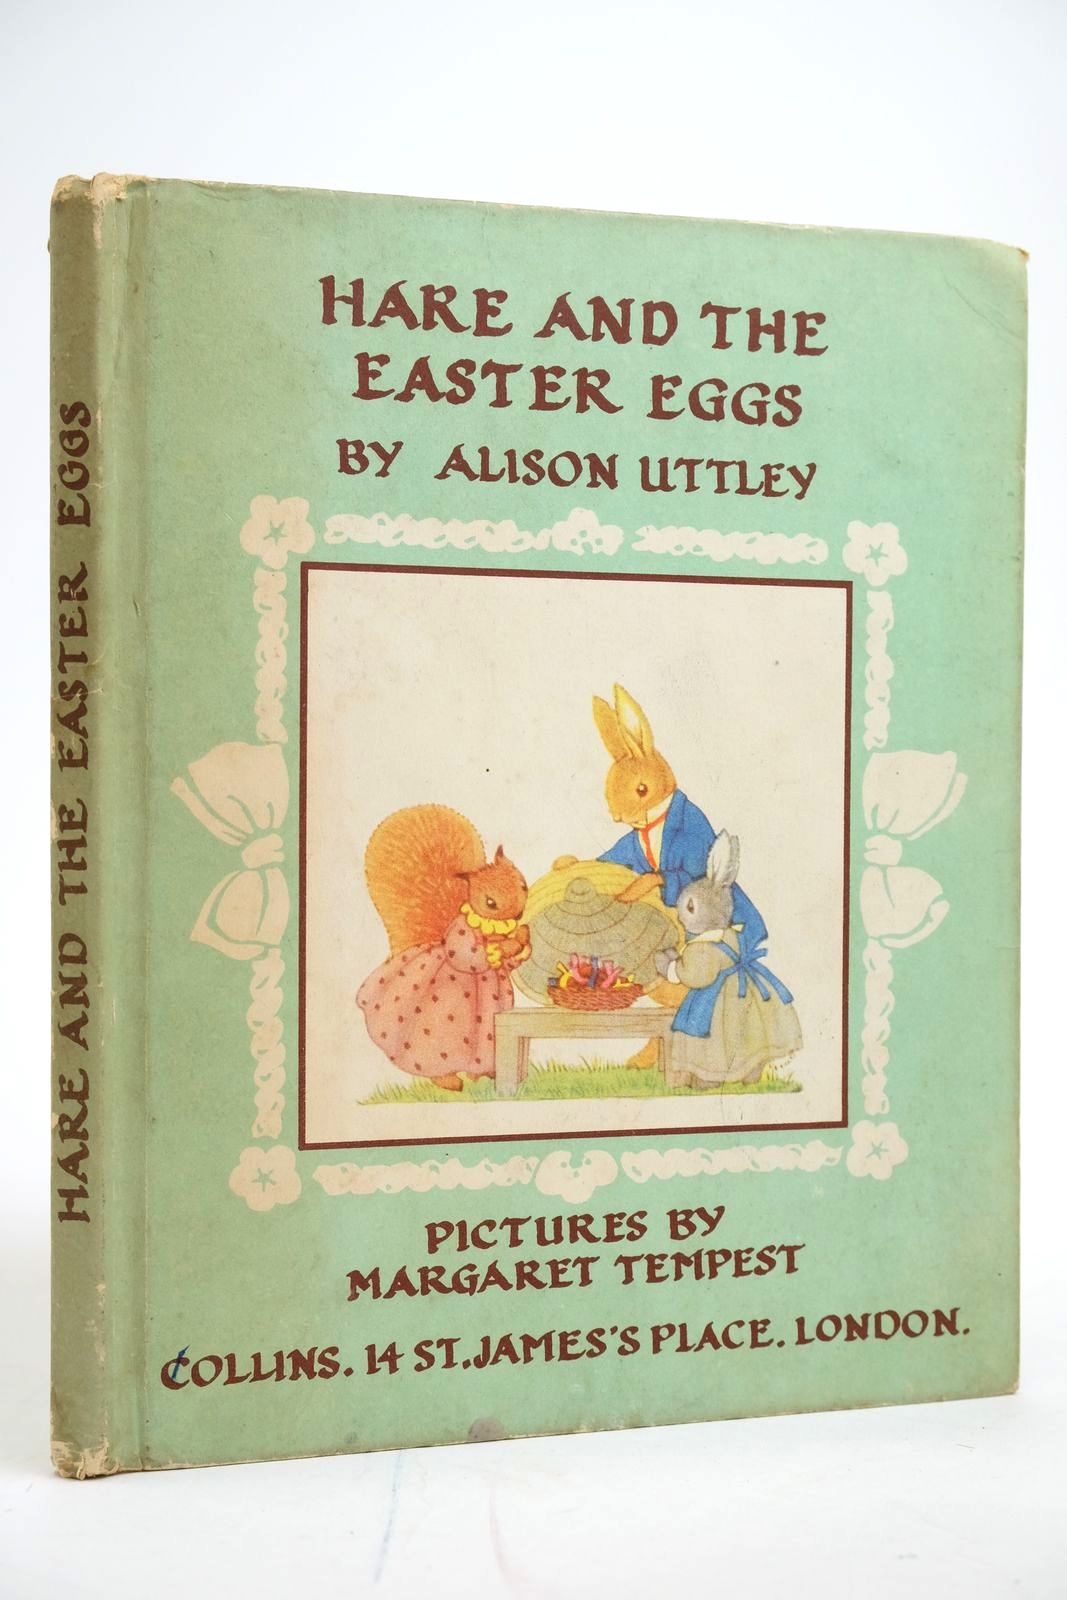 Photo of HARE AND THE EASTER EGGS written by Uttley, Alison illustrated by Tempest, Margaret published by Collins (STOCK CODE: 2135085)  for sale by Stella & Rose's Books